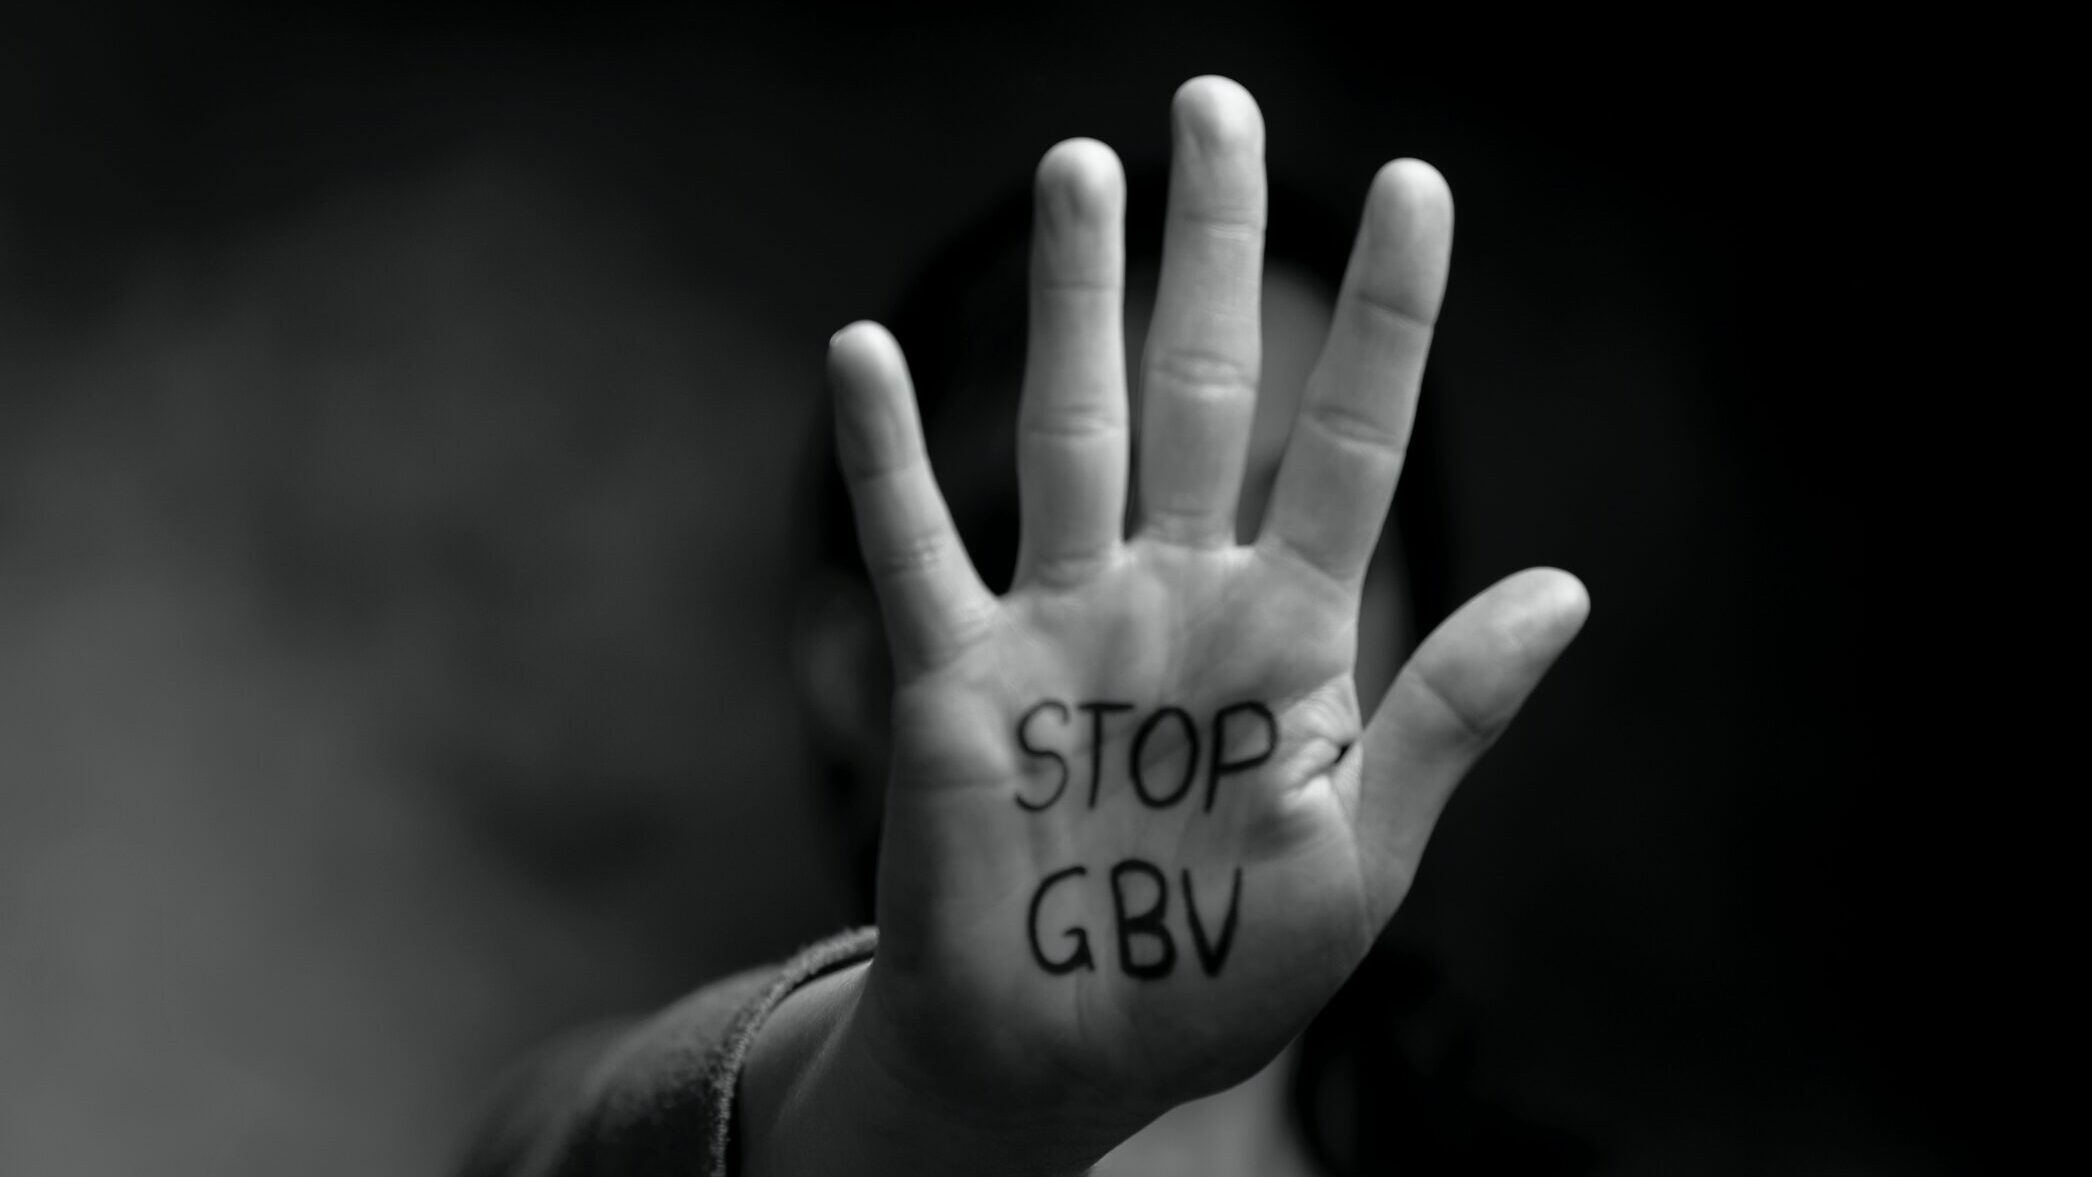 Connection between GBV and HIV